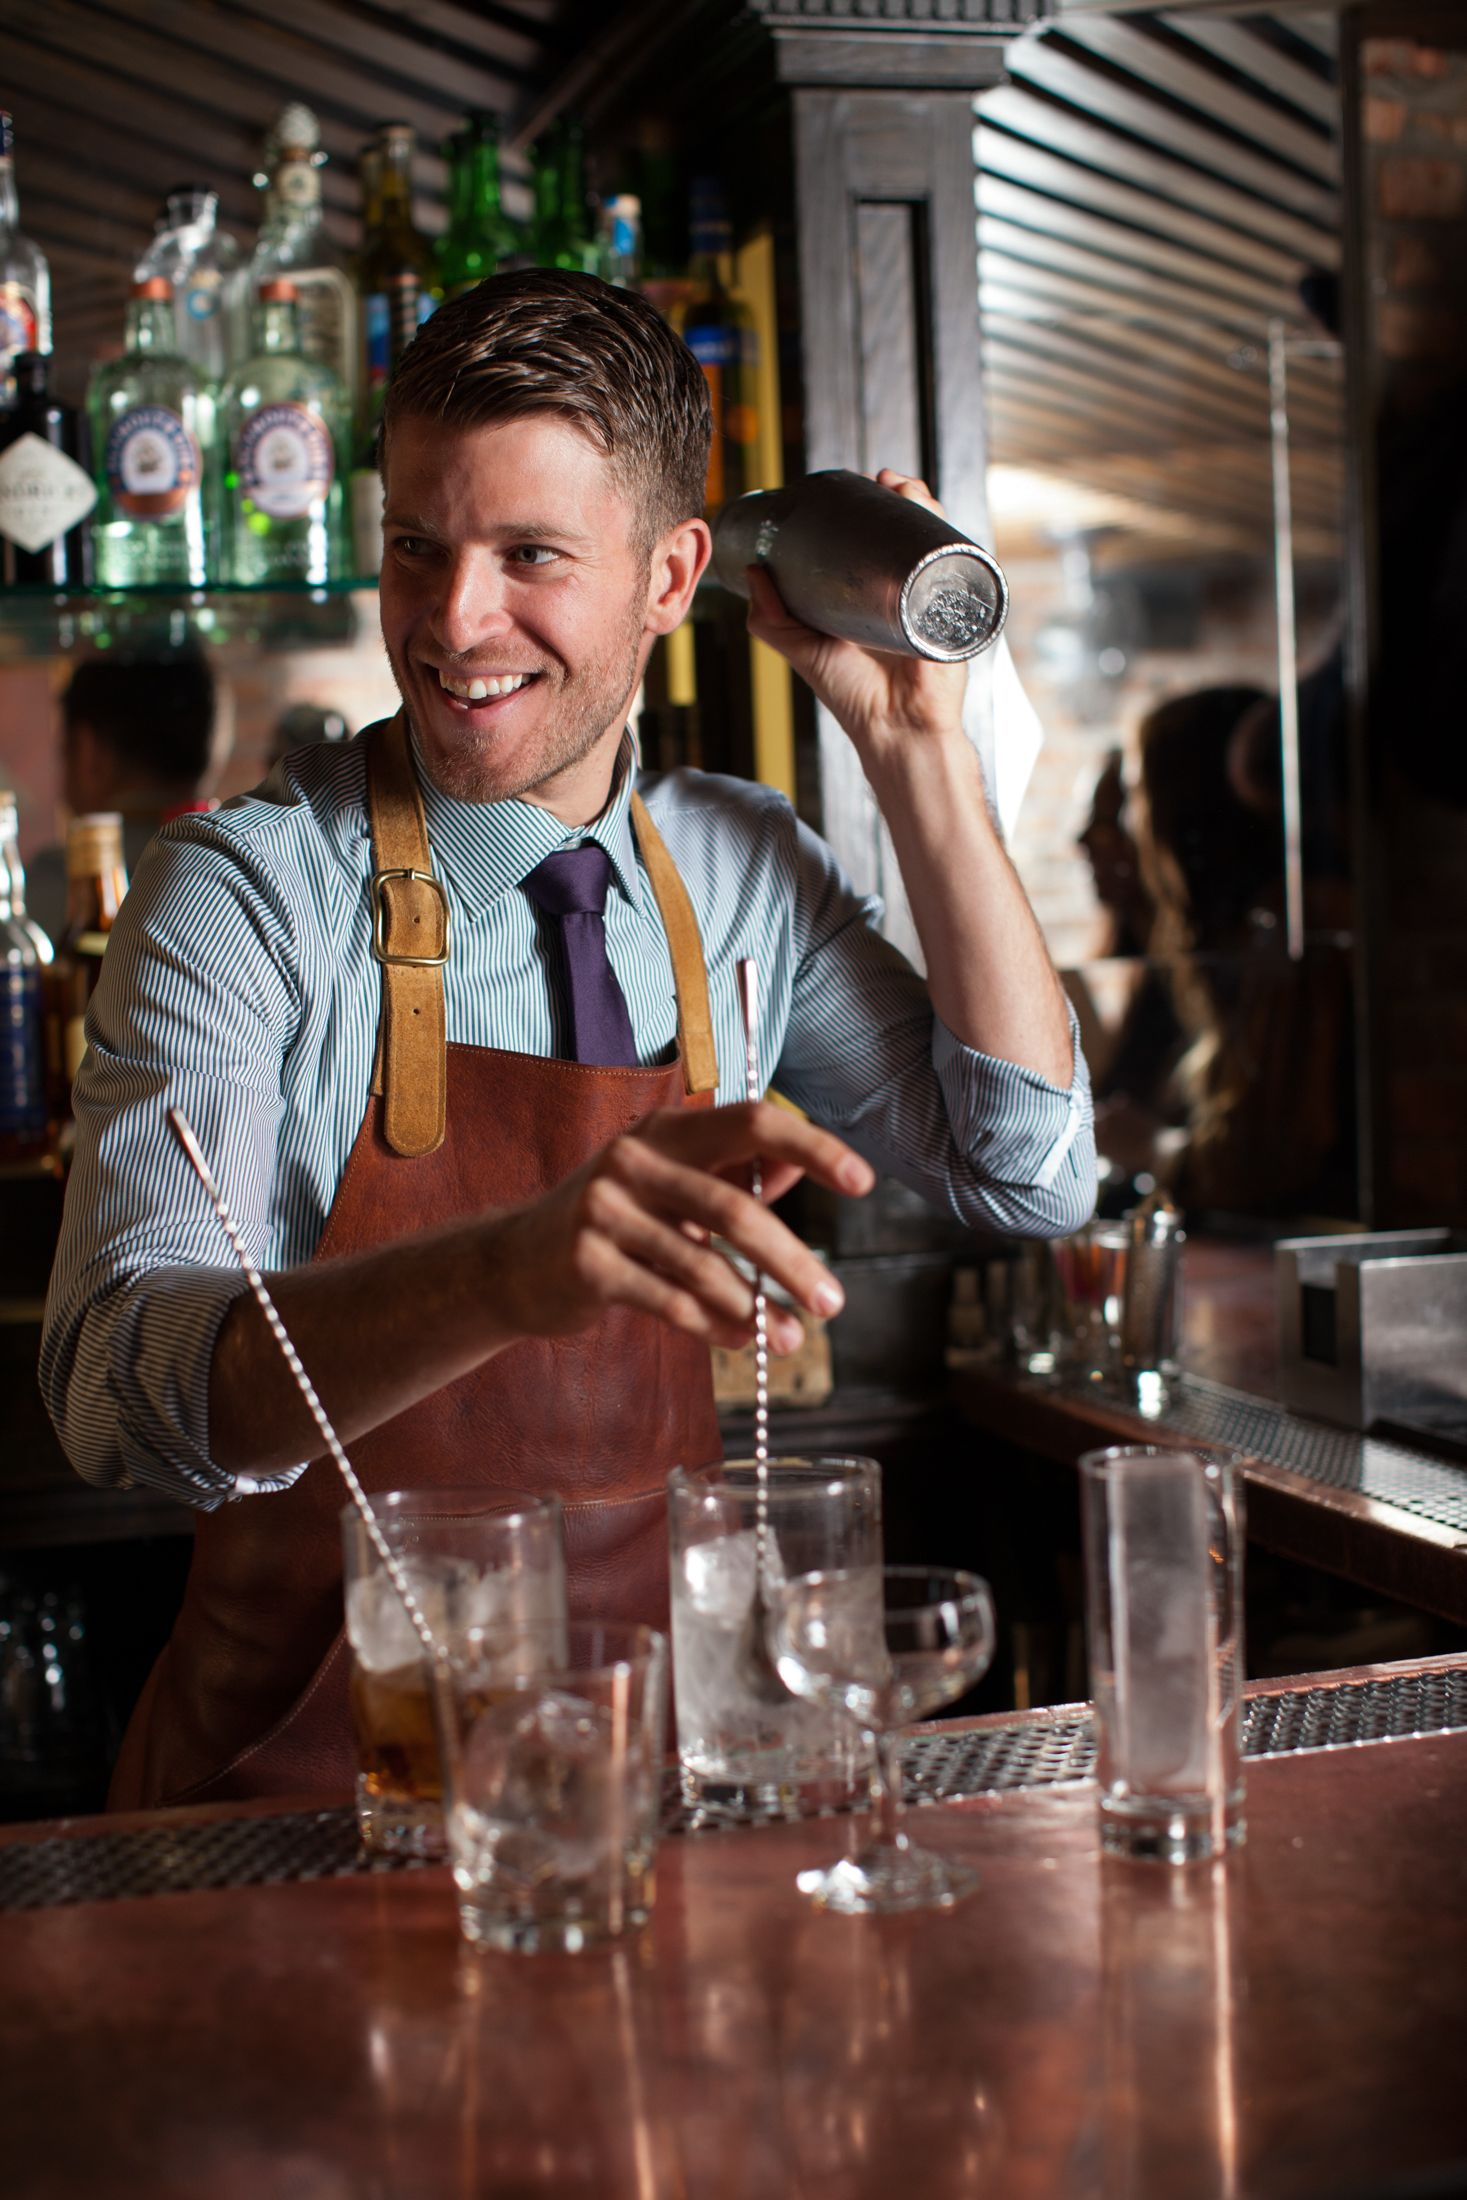 learn how to barista and bartender